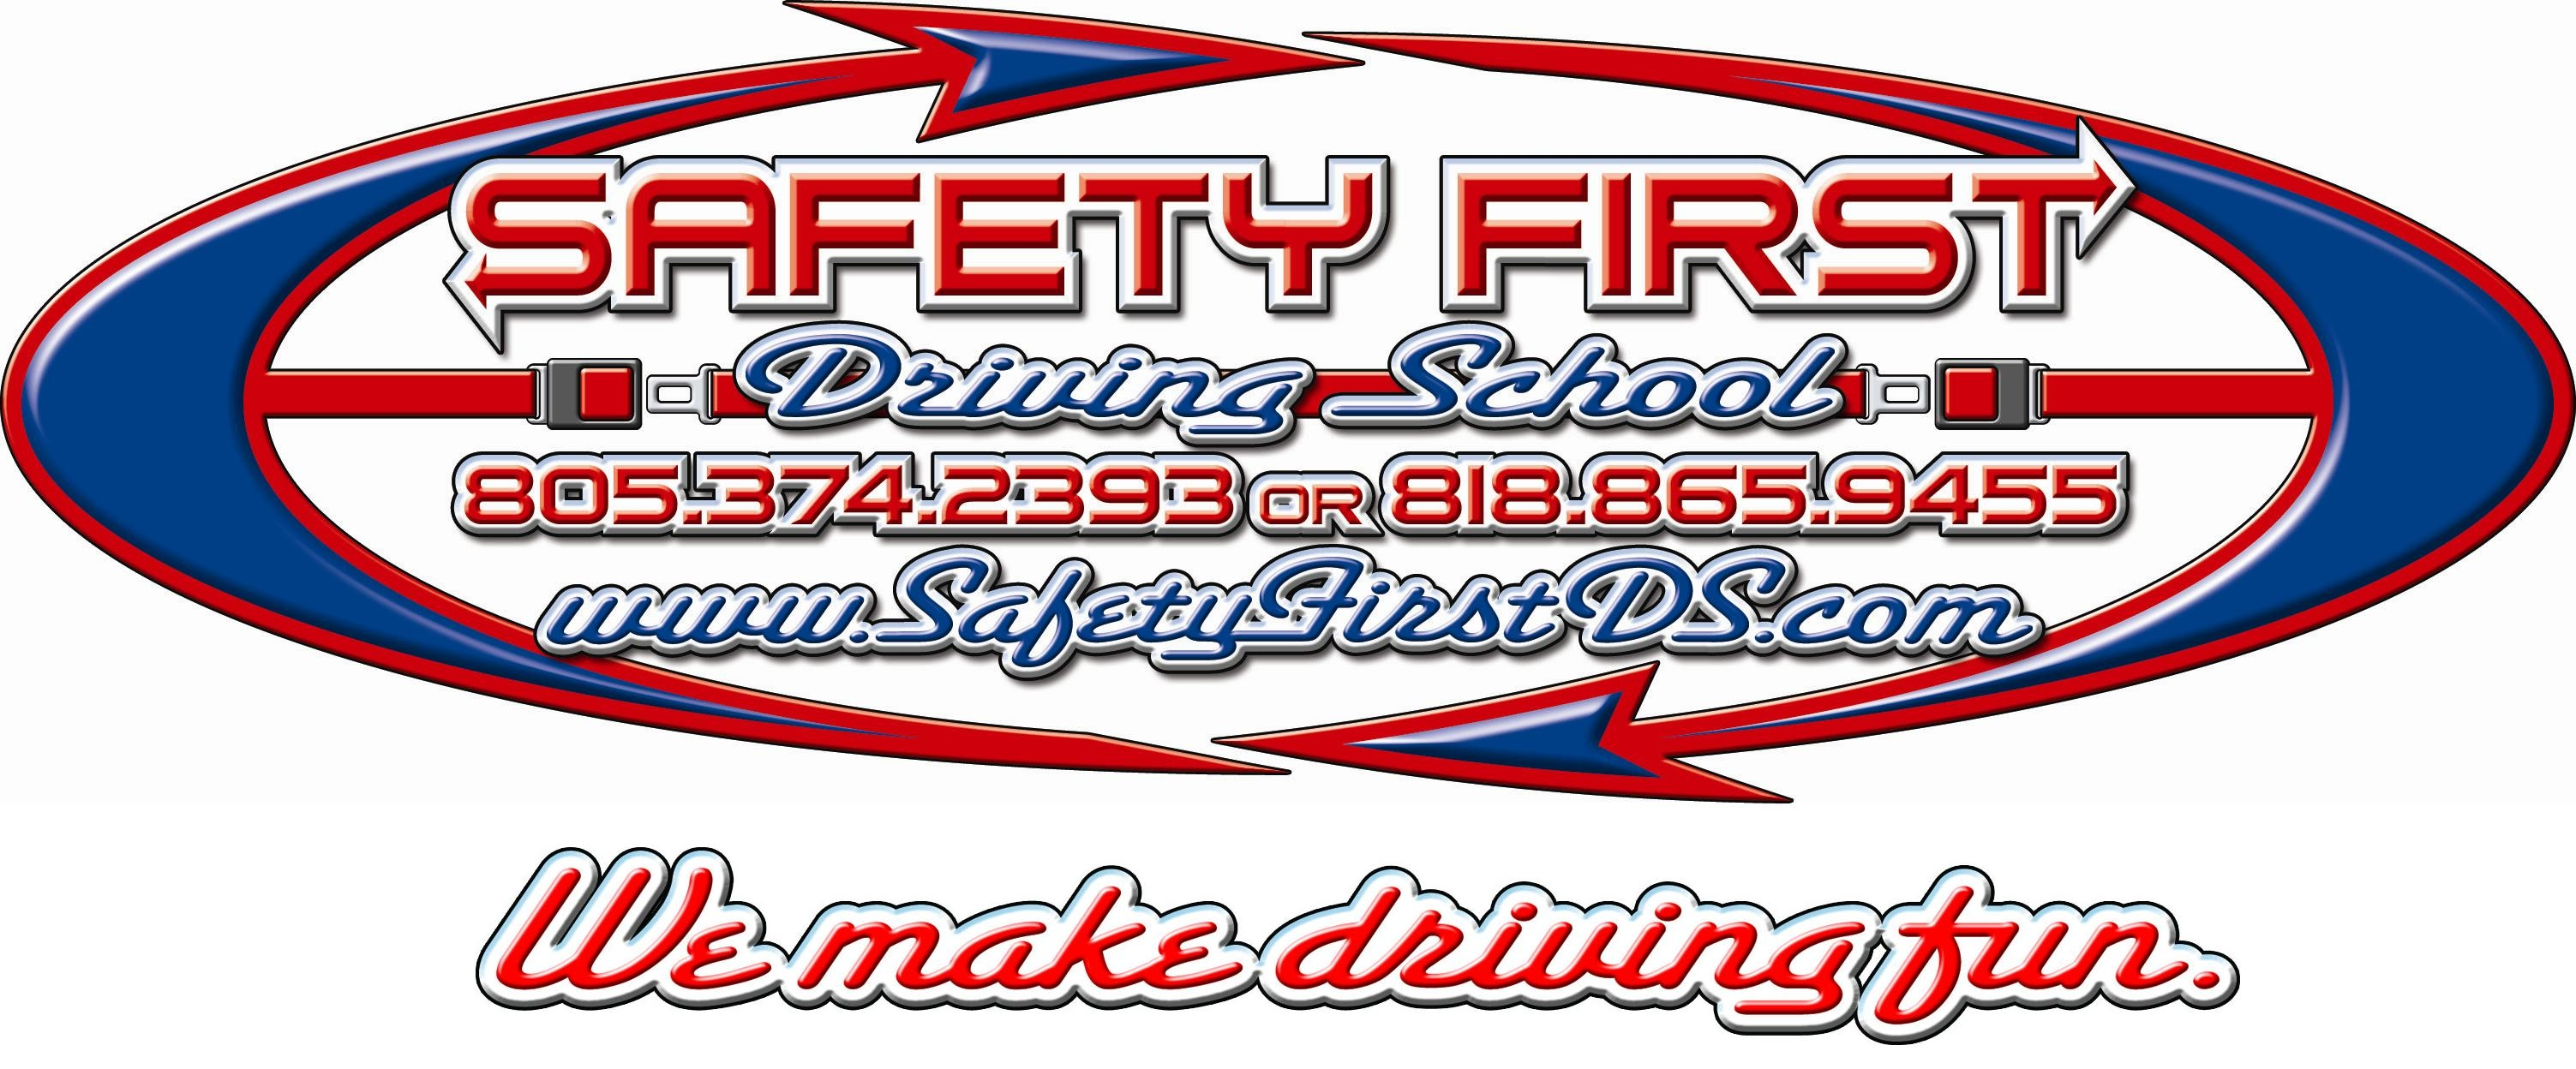 safety first driving school coupons near me in westlake village 8coupons. Black Bedroom Furniture Sets. Home Design Ideas